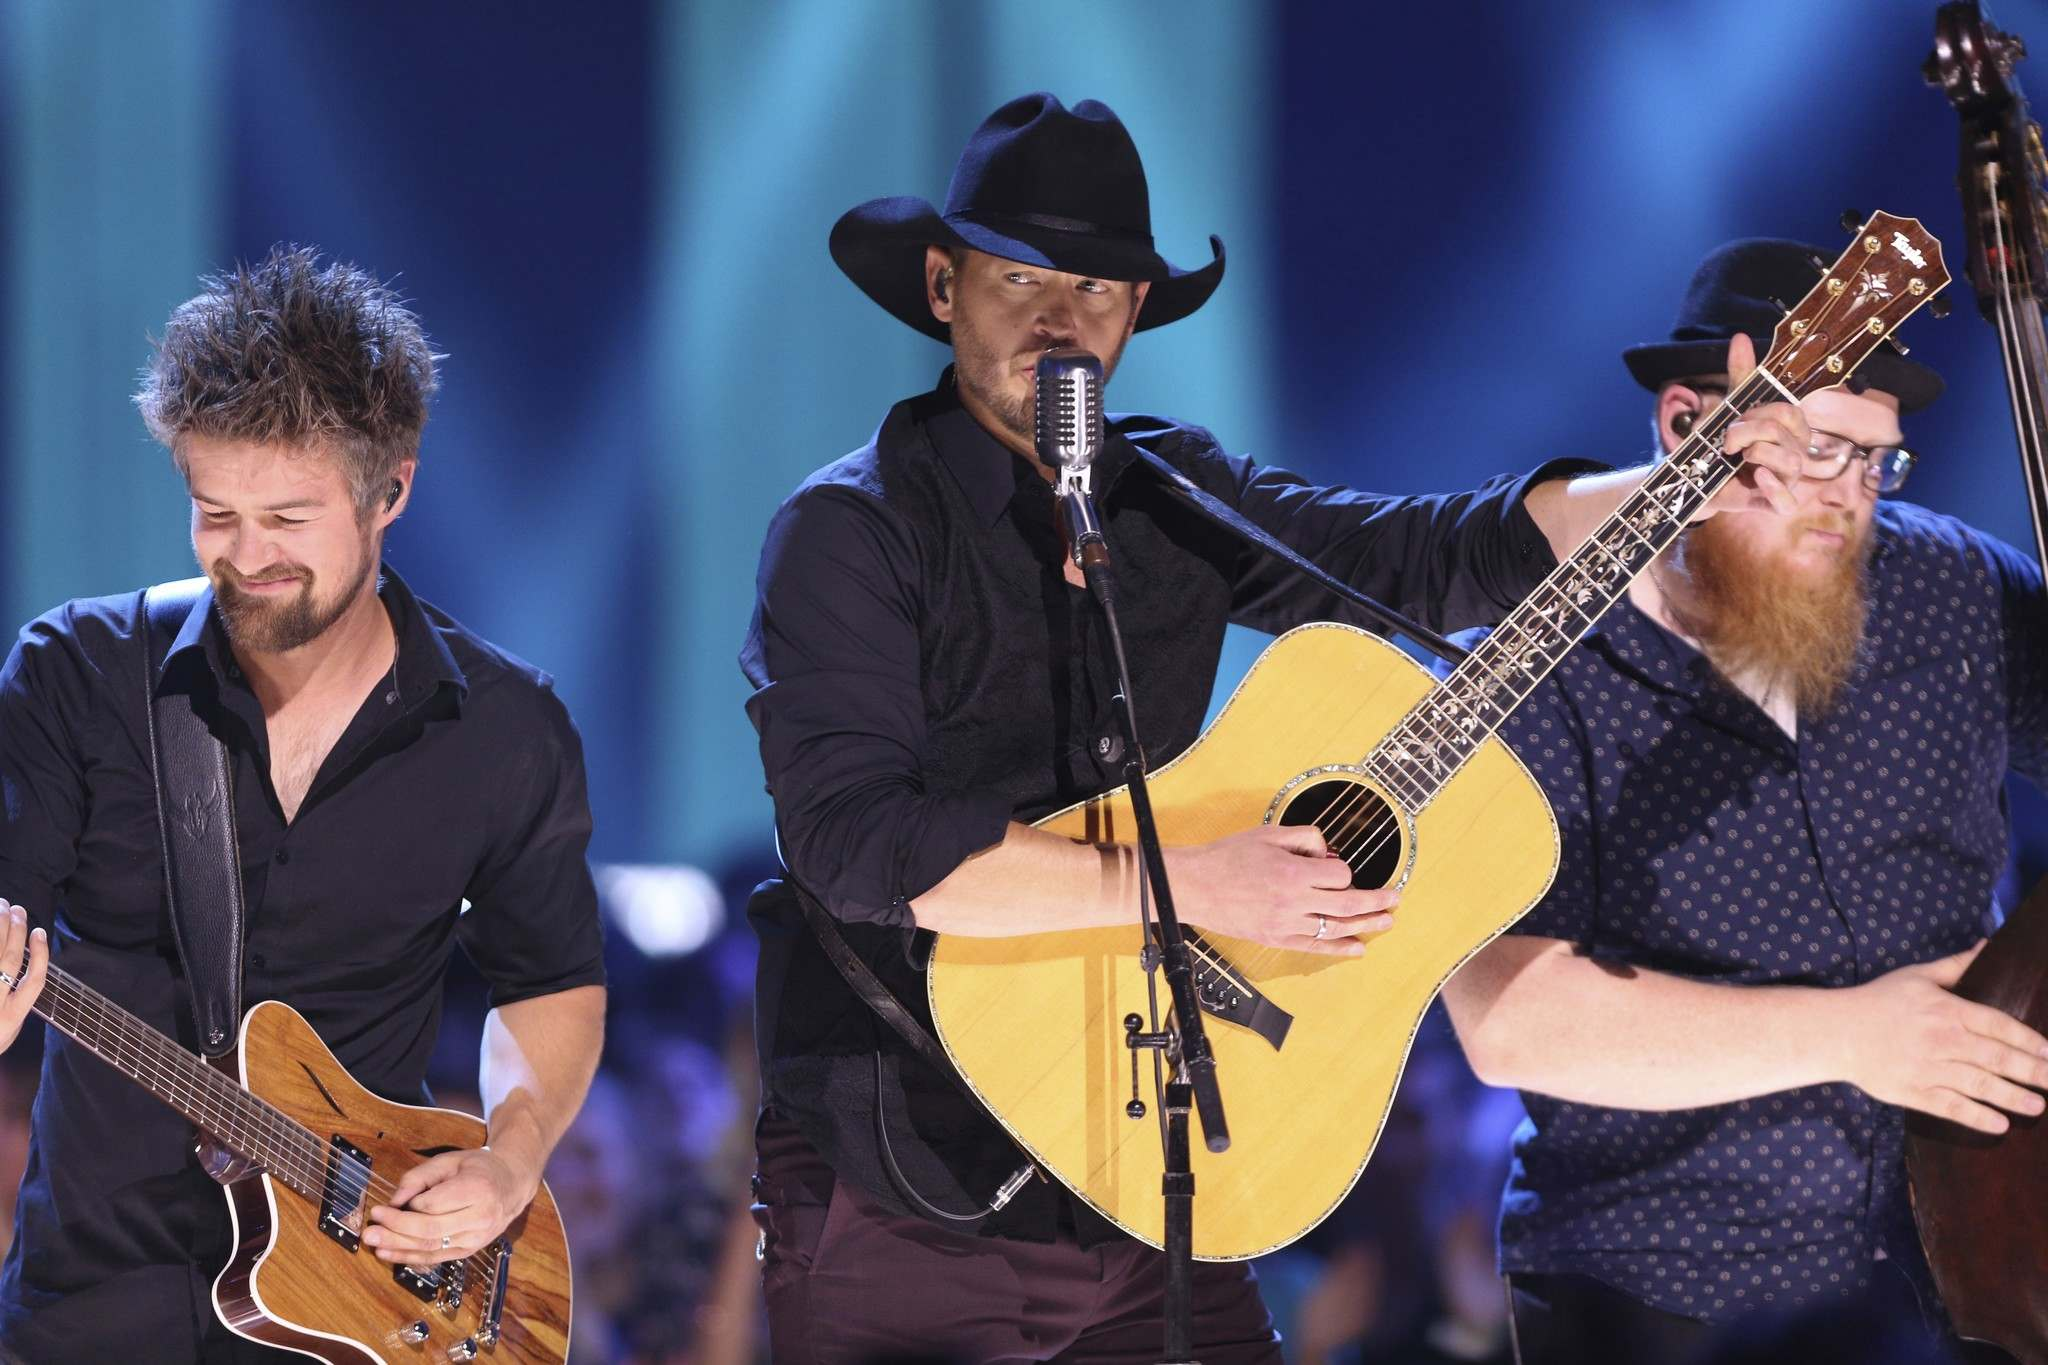 Brandt performs at the Canadian Country Music Awards in Hamilton, Ont. last year. (Peter Power / Canadian Press files)